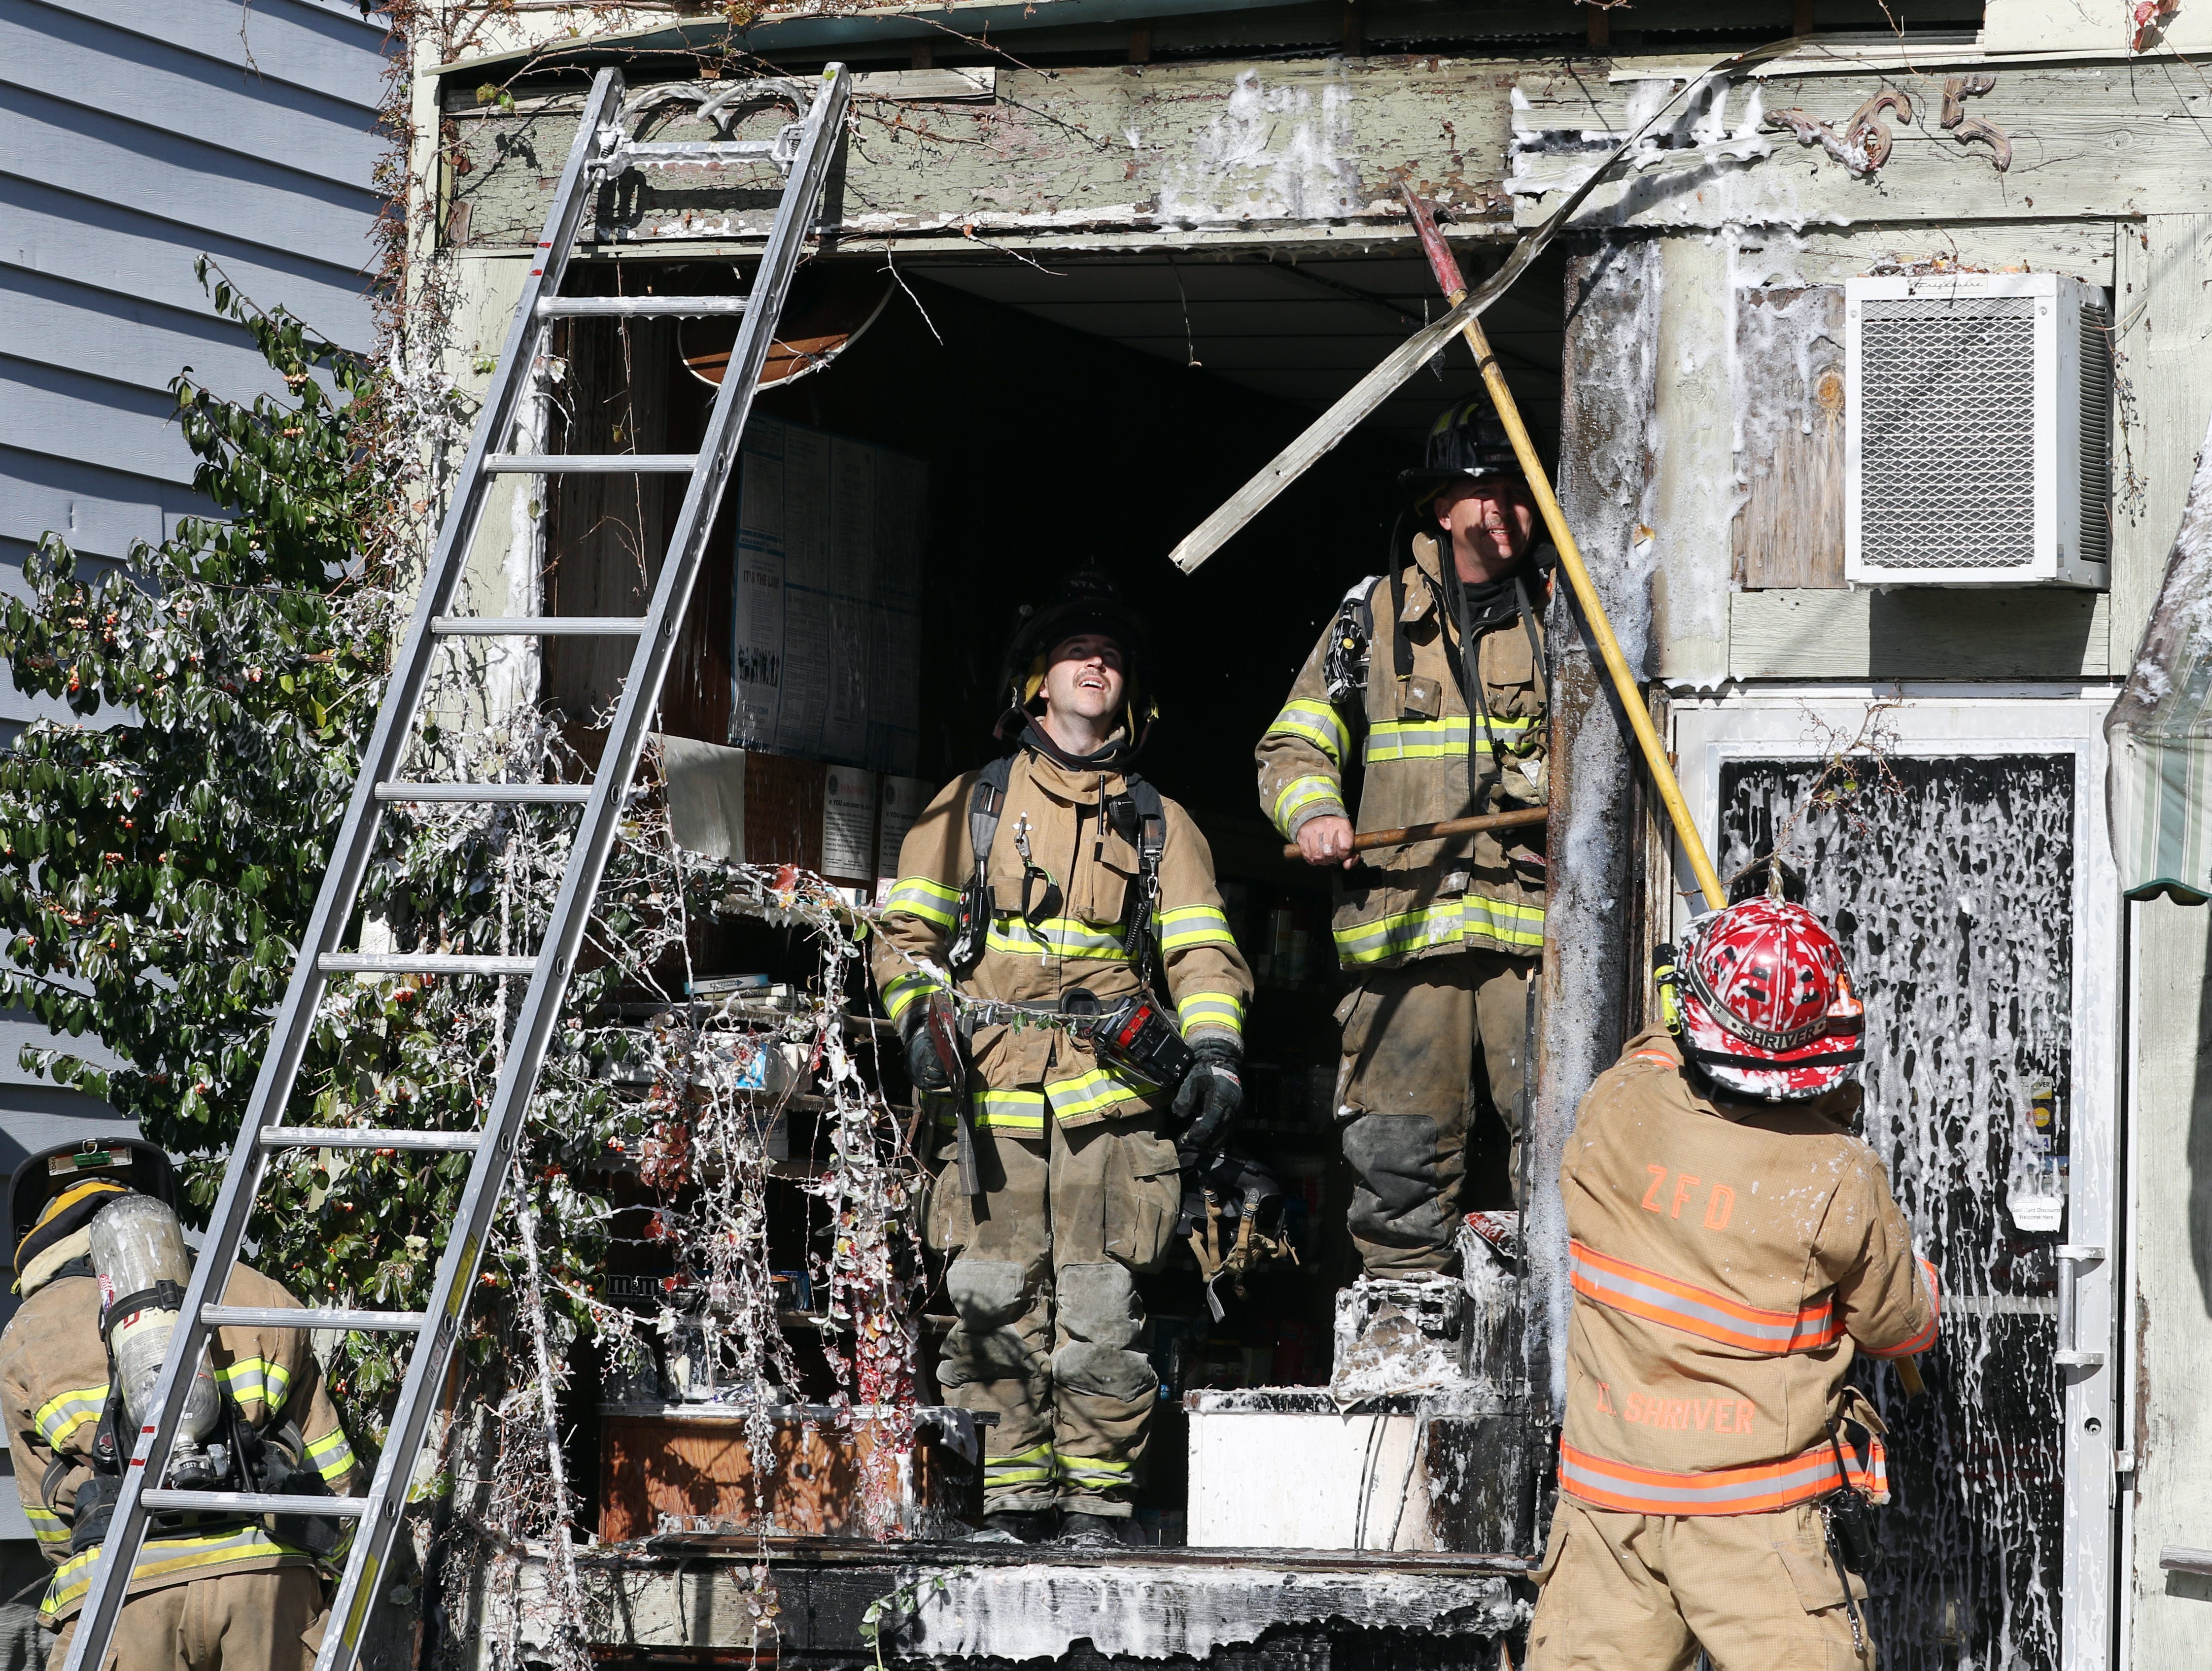 The Zanesville Fire Department extinguished a fire at the former Kimbles Meat Market on McIntire Avenue in Zanesville on Wednesday. The fire was confined to the exterior fo the abandoned building.